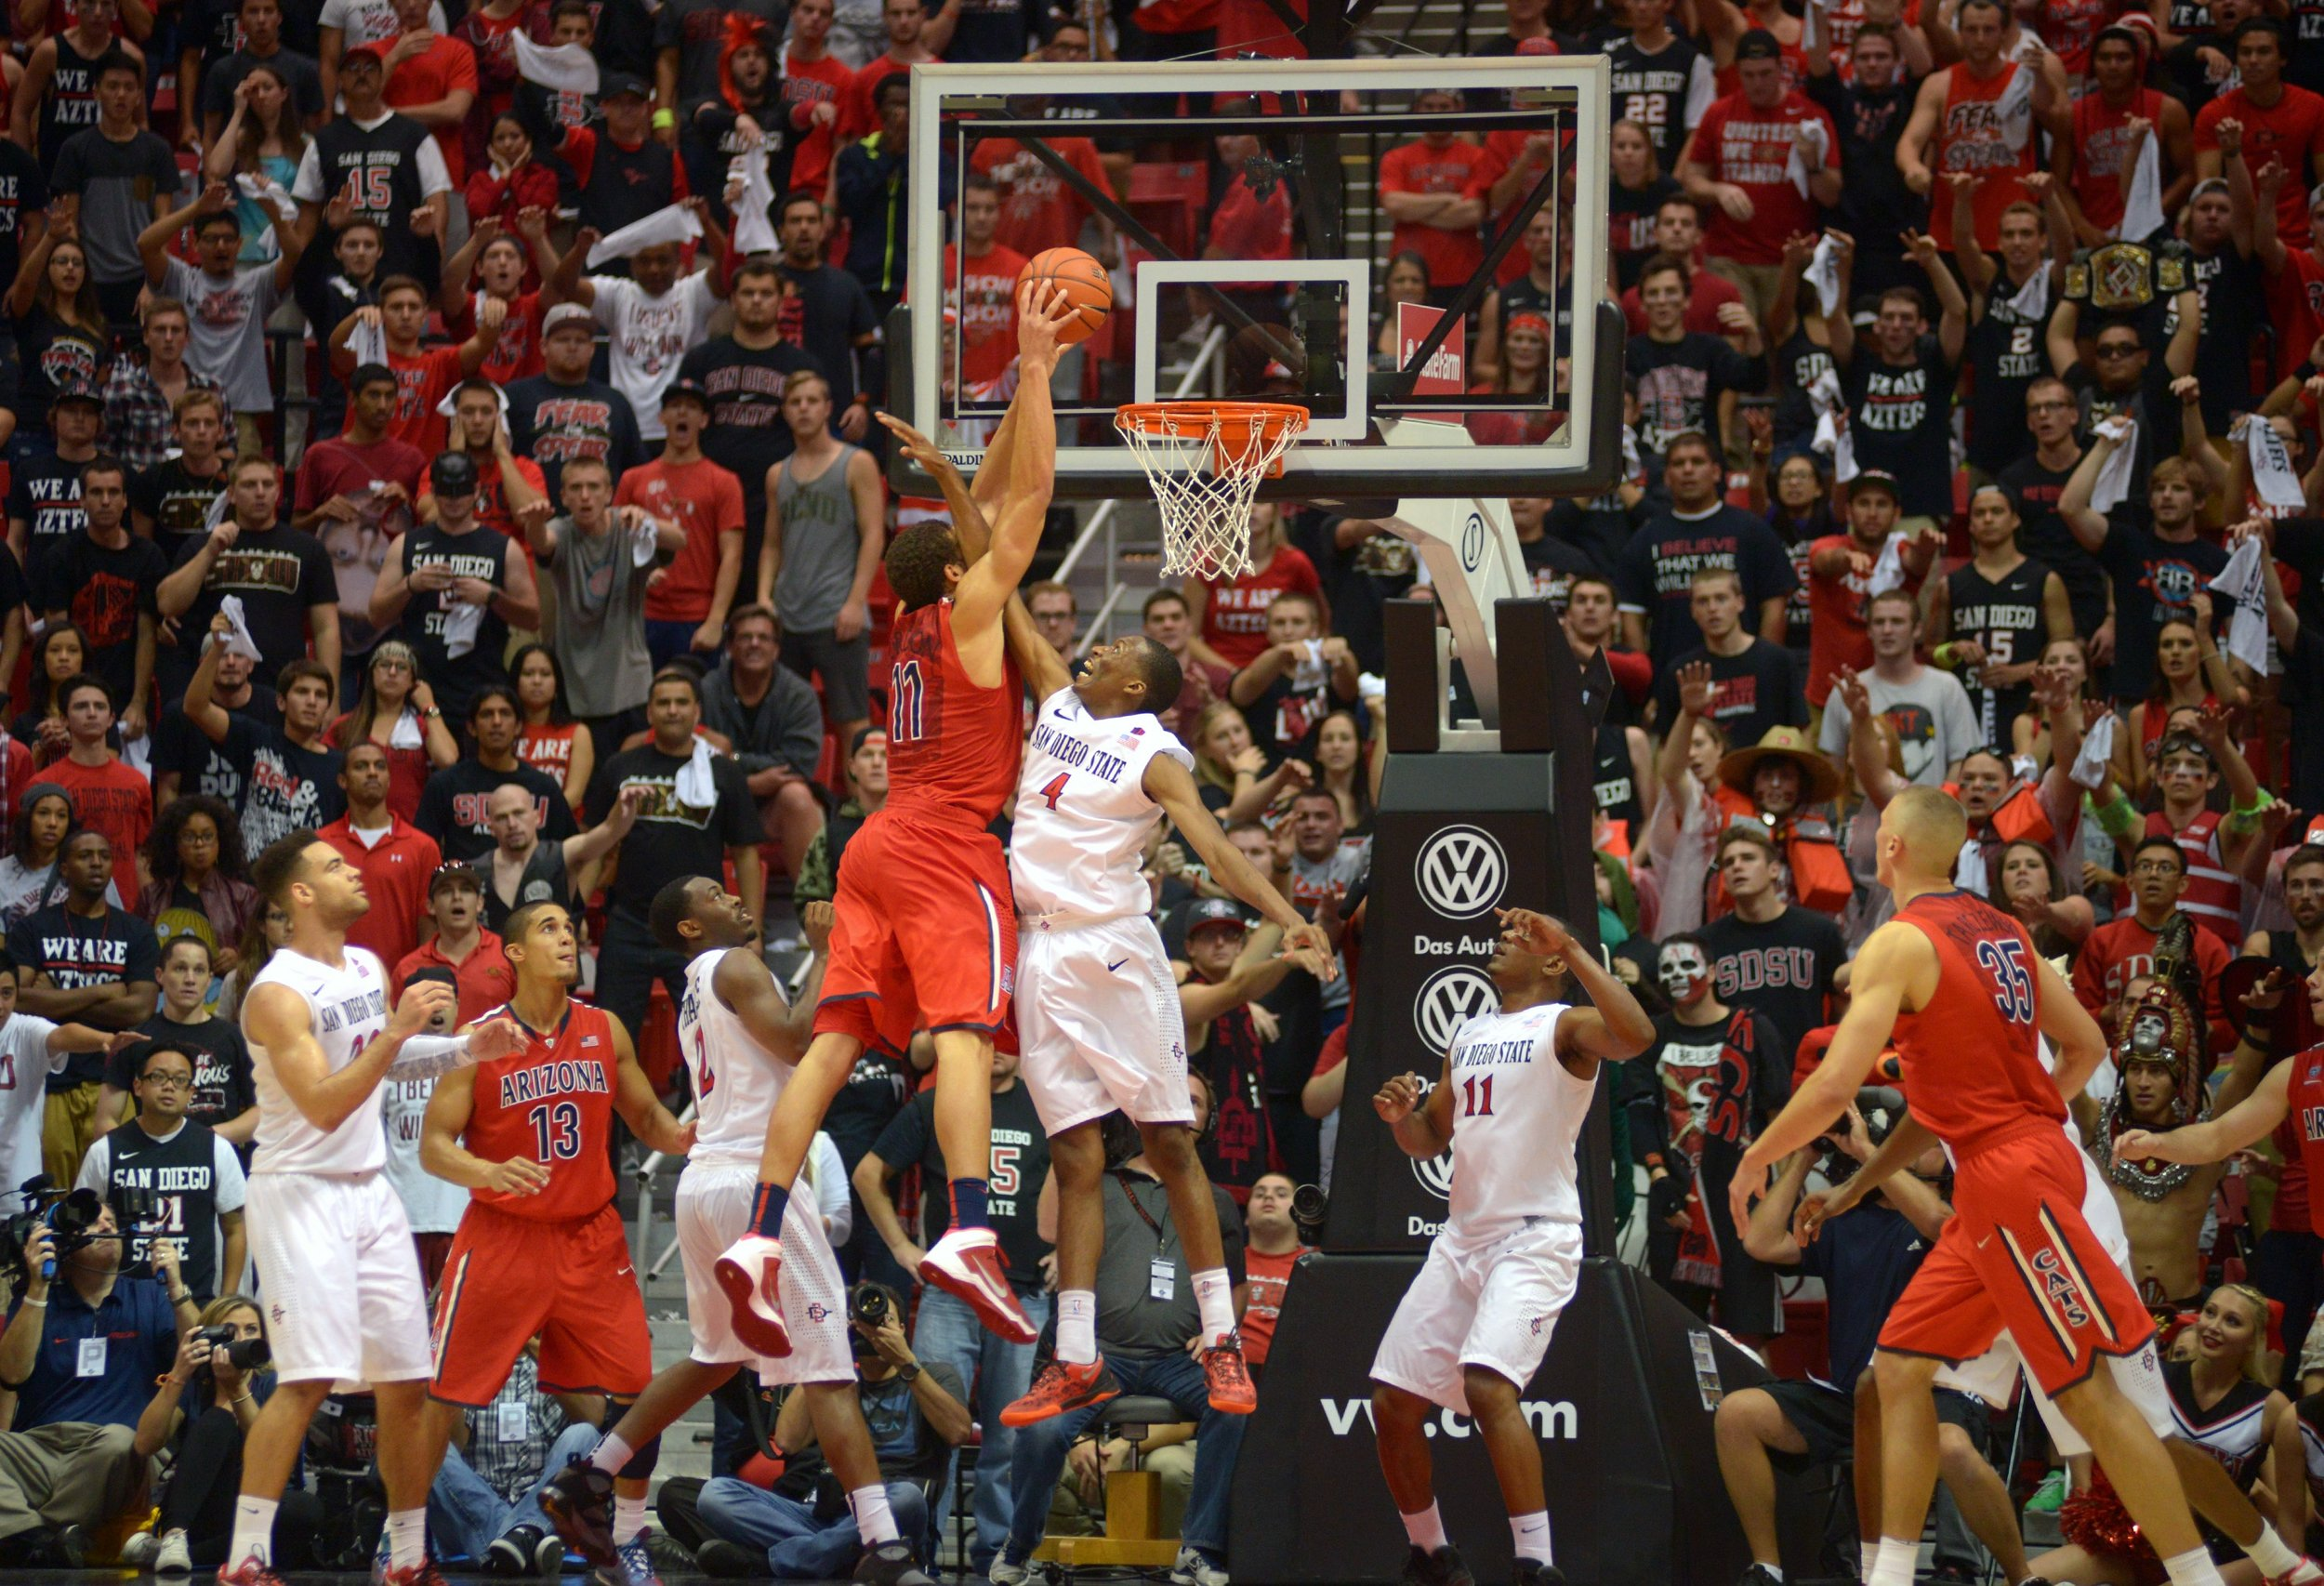 SAN DIEGO, CA - NOVEMBER 14: Aaron Gordon #11 of theArizona Wildcats dunks the ball on an inbounds pass in the second half of the game and is fouled by Dakarai Allen #4 of the San Diego State Aztecs at Viejas Arena on November 14, 2013 in San Diego, California. (Photo by Kent C. Horner/Getty Images)